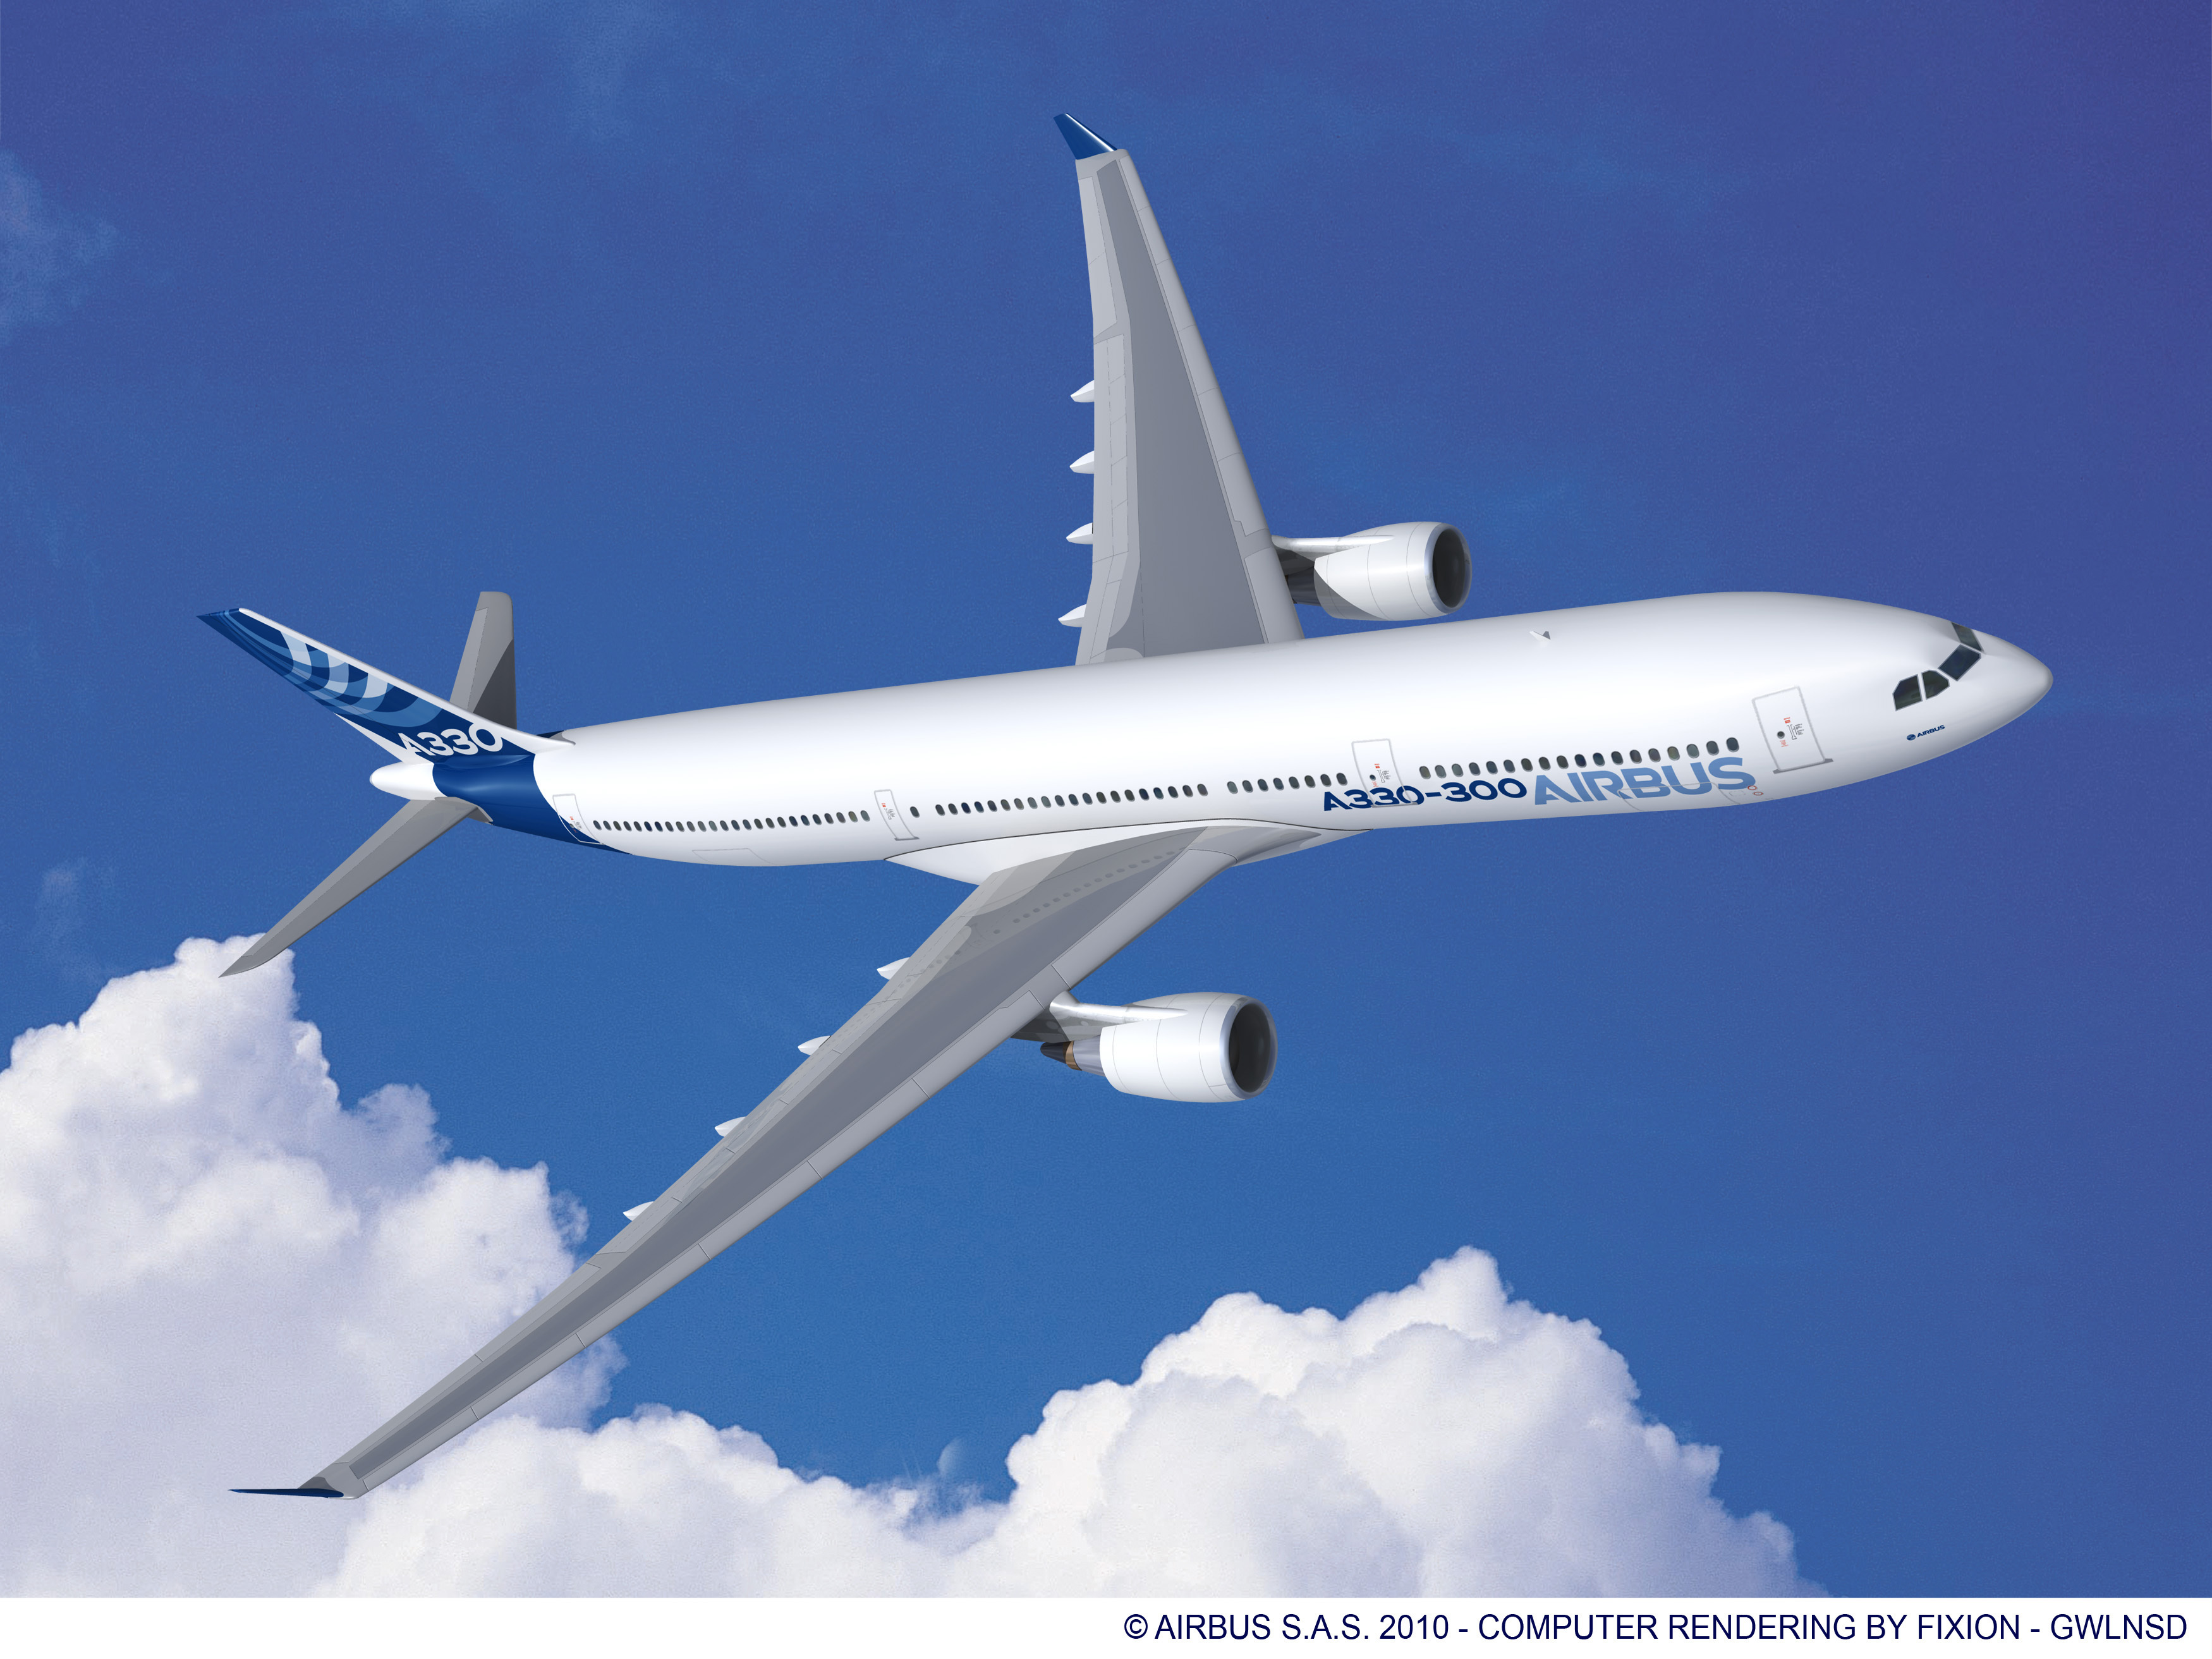 A maturing small twin-aisle aircraft market presents challenges and opportunities for Airbus as it considers the future of its A330 aircraft, according to Steve Mason, Vice President of Aircraft Analysis, CIT Aerospace. (Photo: Business Wire)